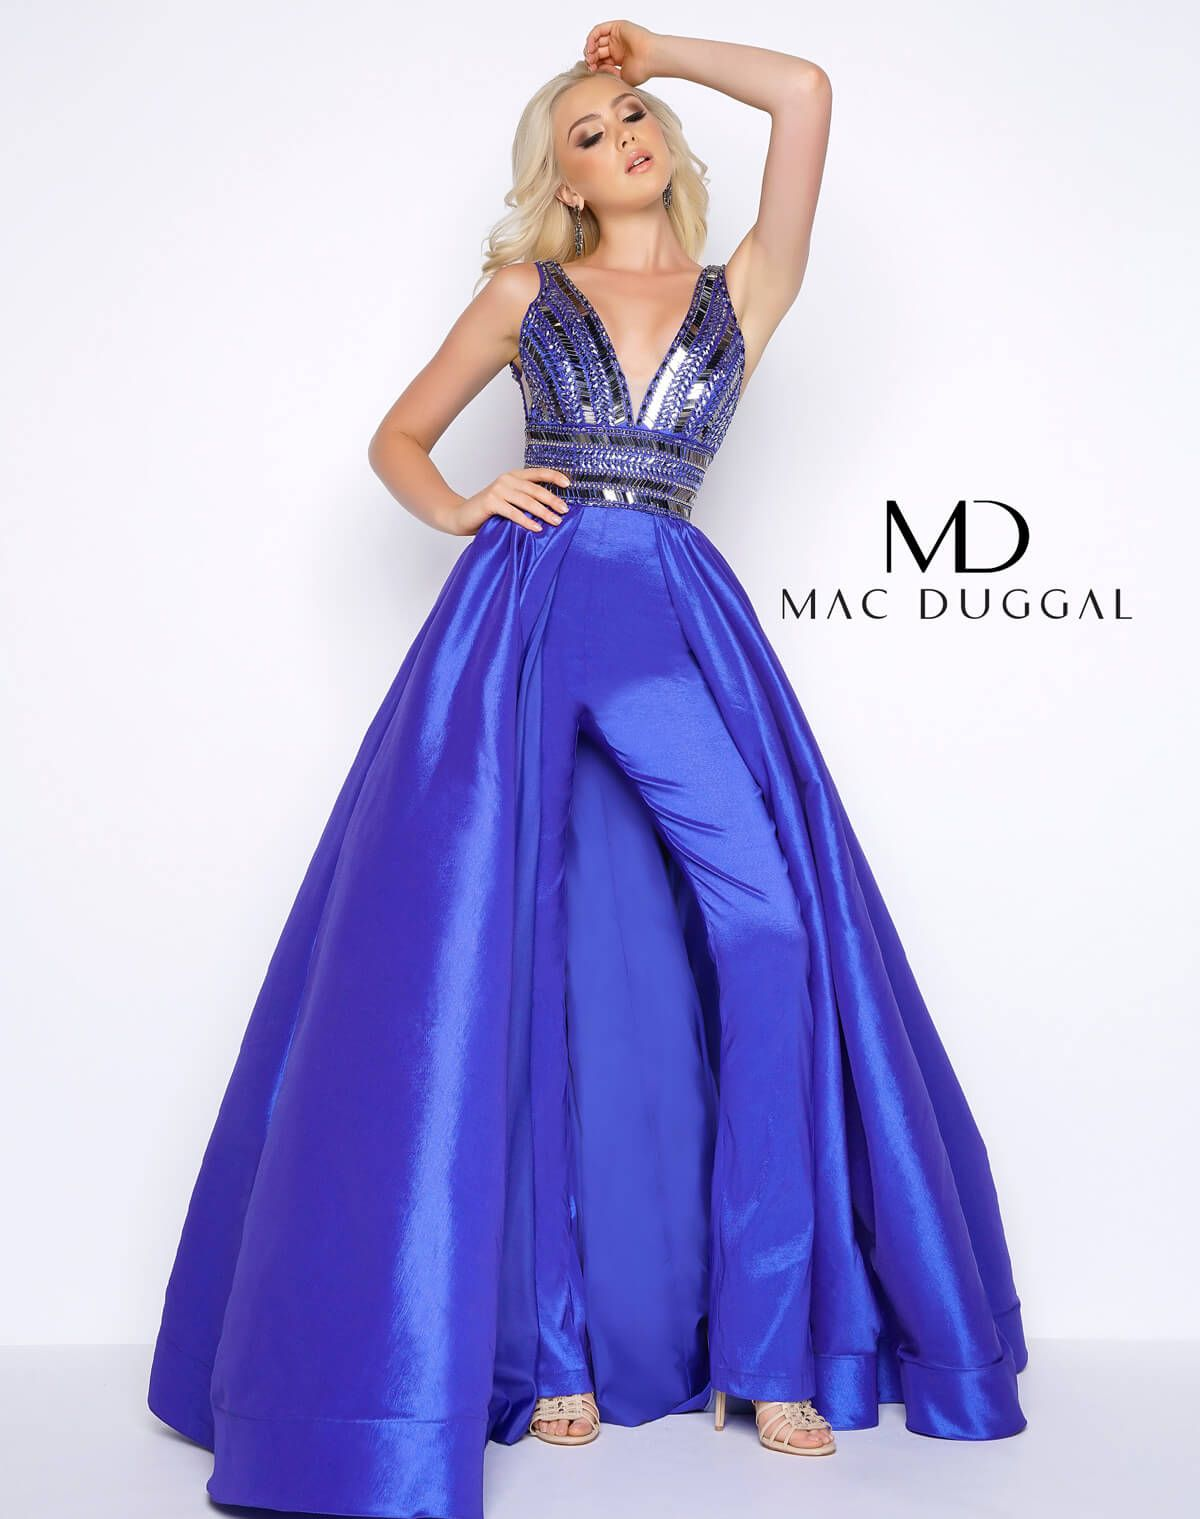 Satin jumpsuit with plunging vneckline beaded bodice and full